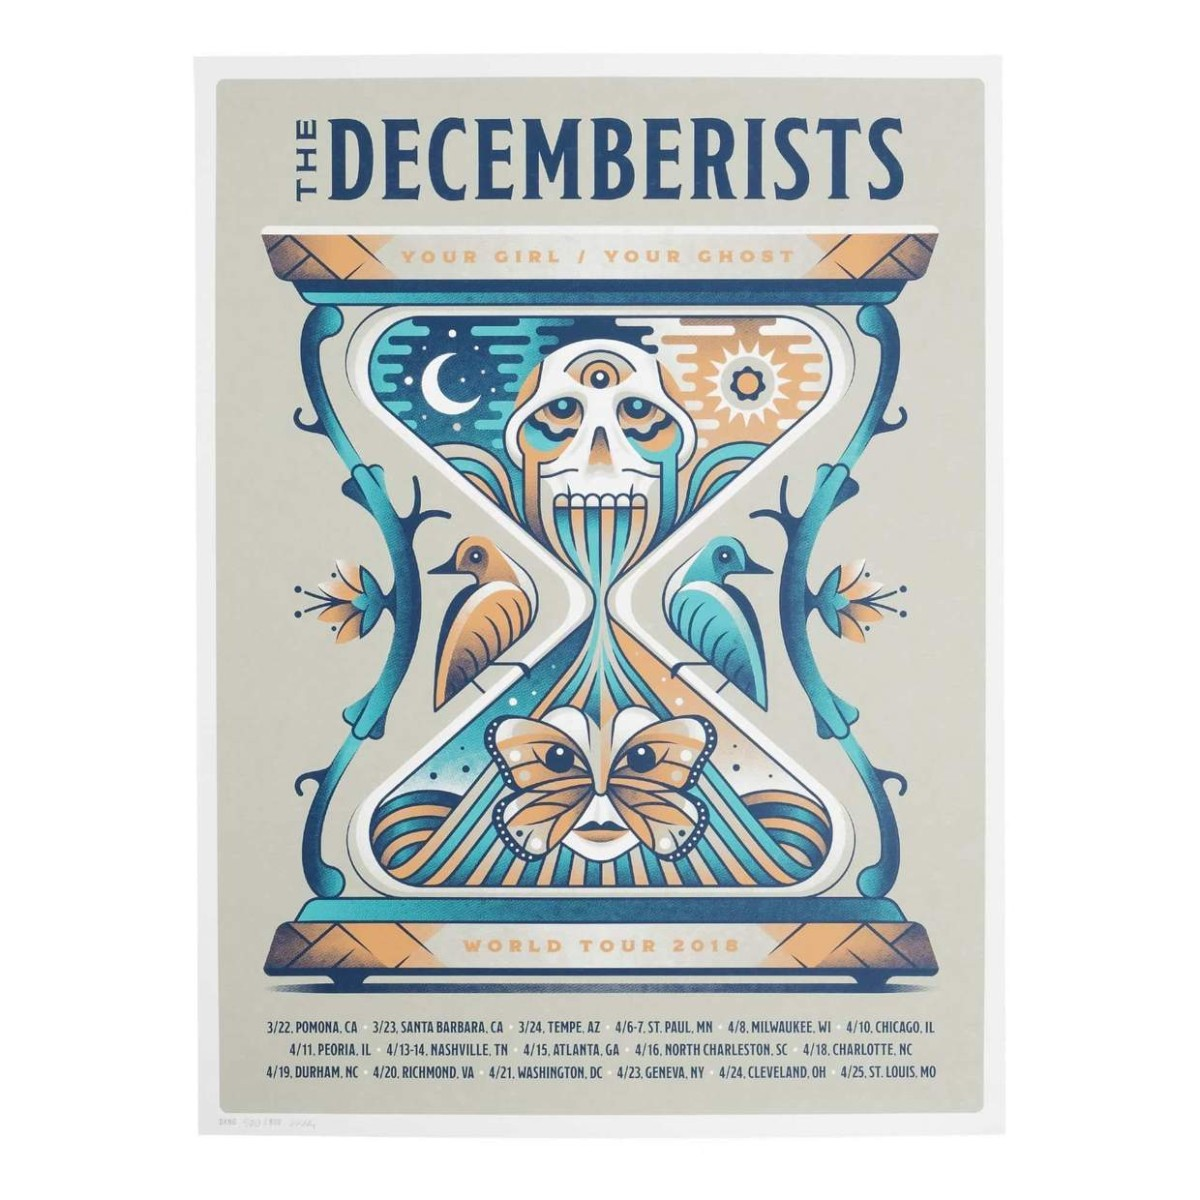 "The Decemberists 'Your Girl/Your Ghost' 2018 Tour Poster - 18"" x 24"""